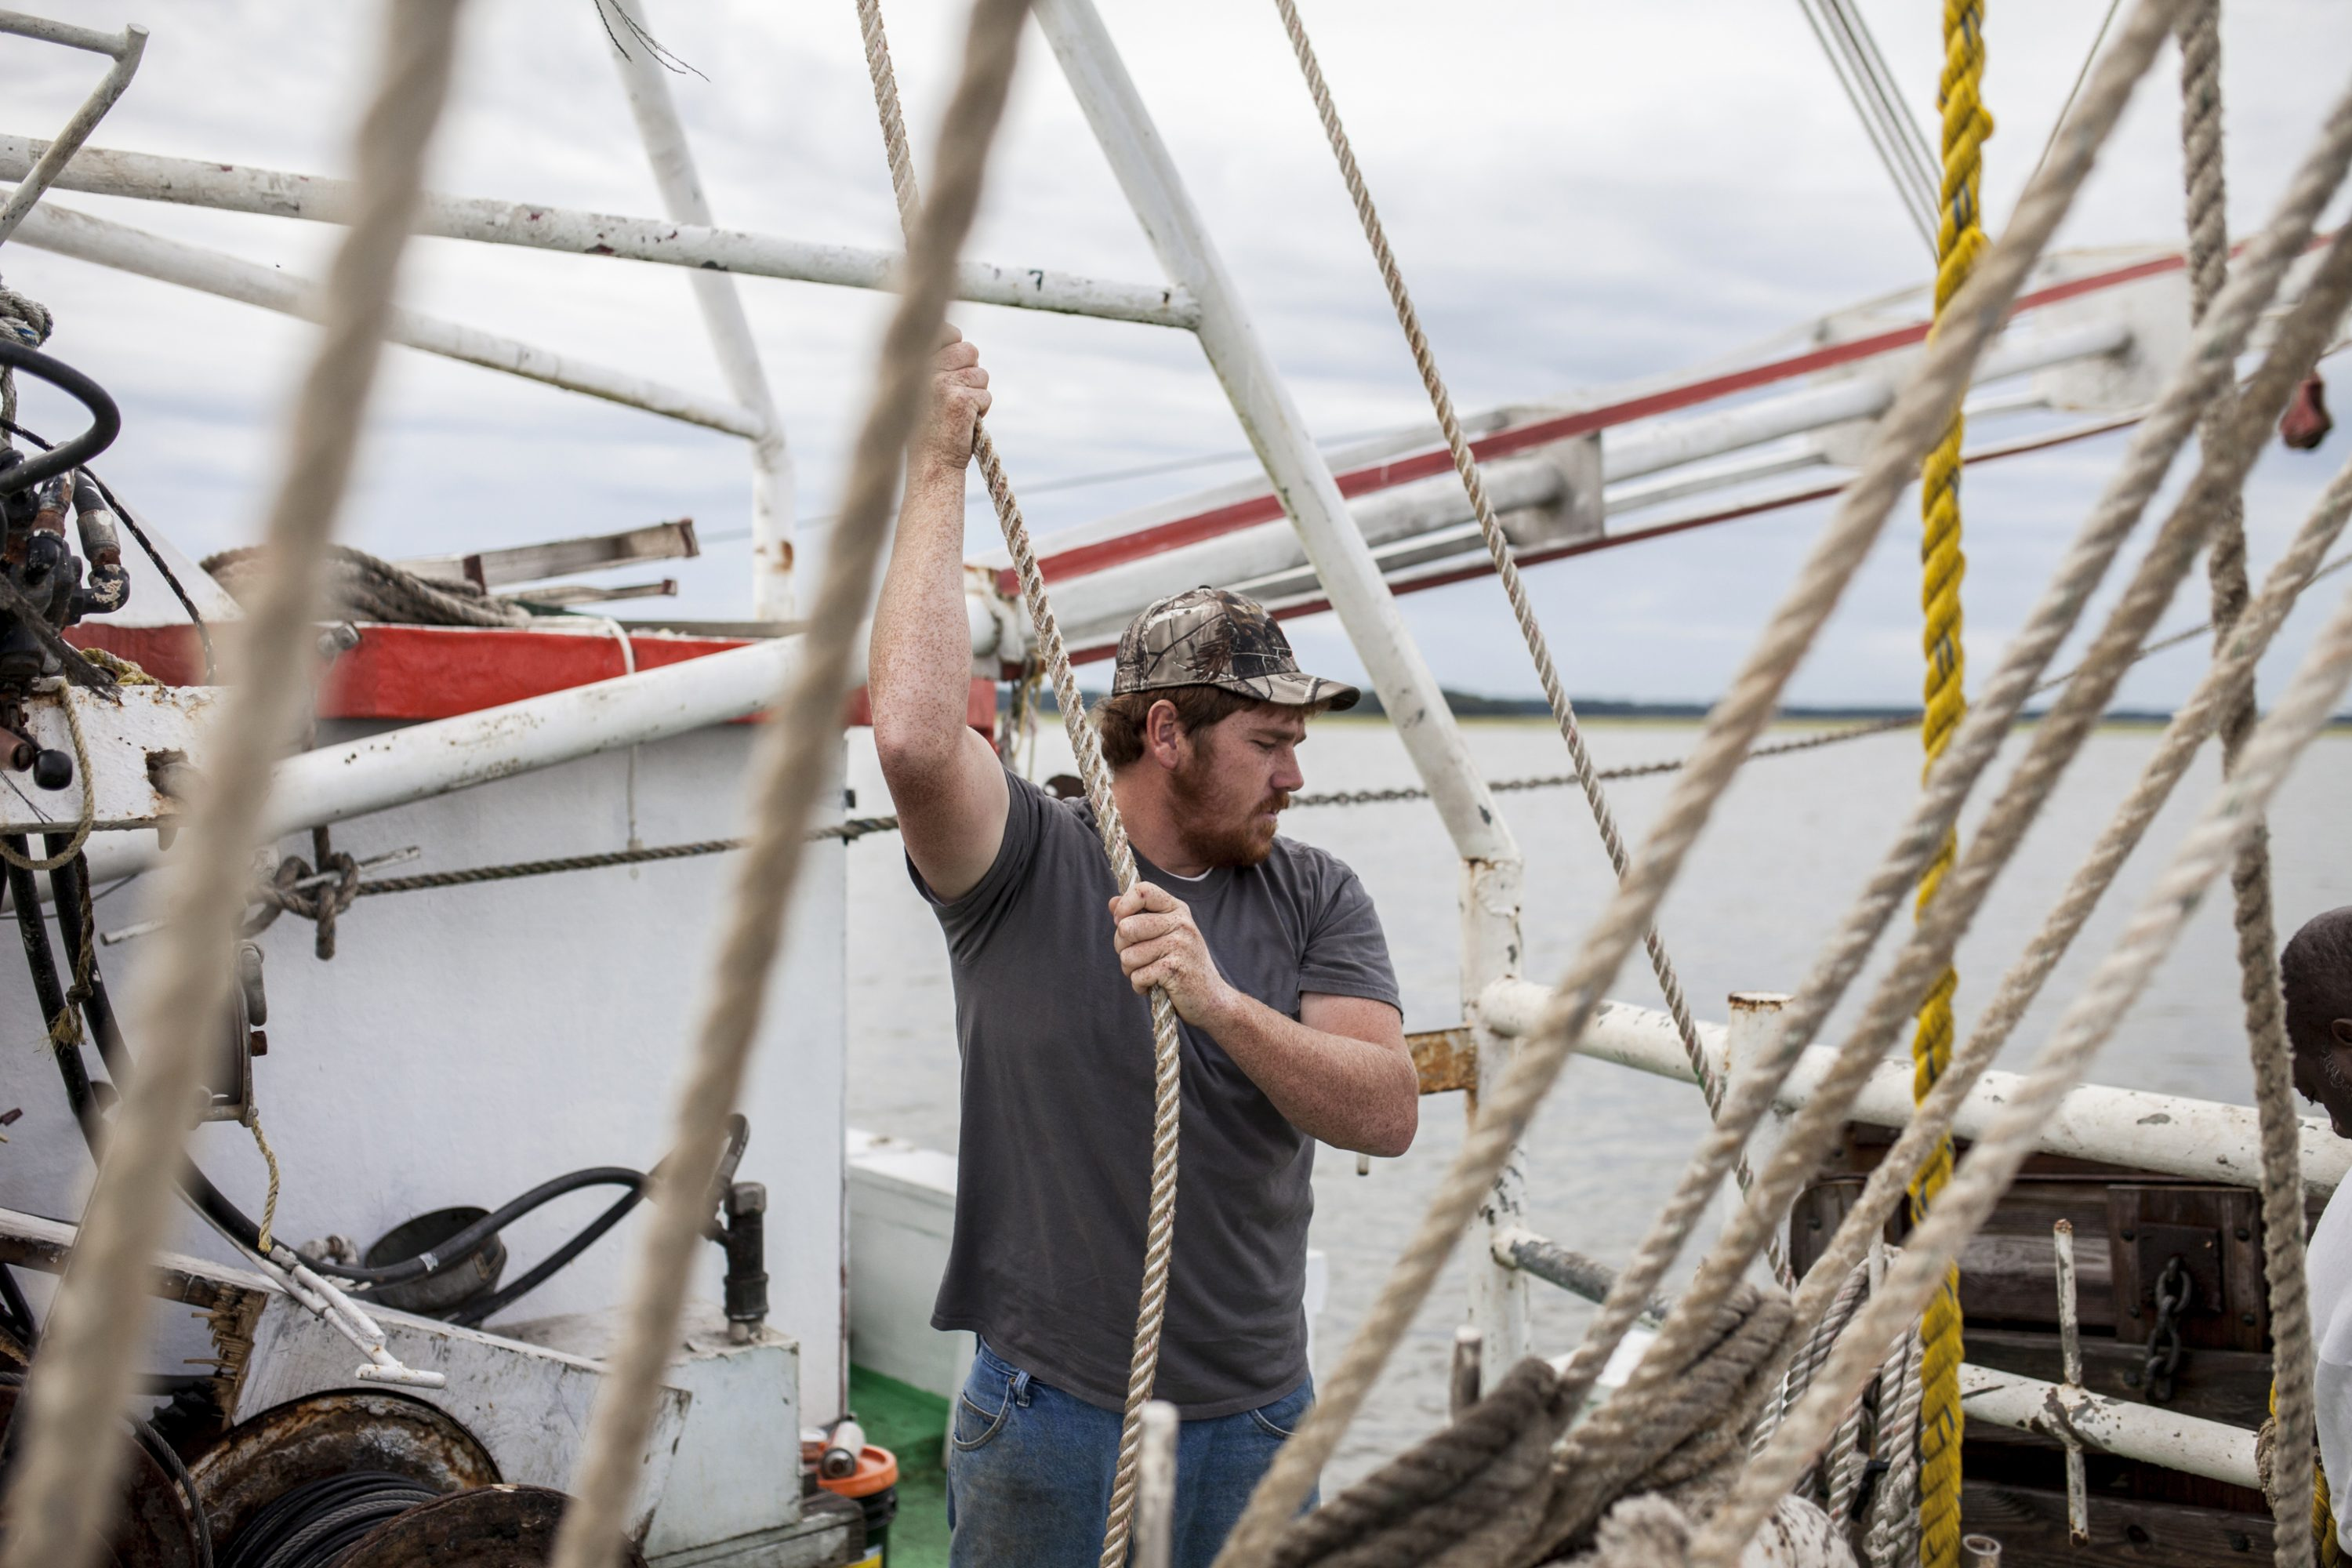 Deckhand Accidents and Injuries